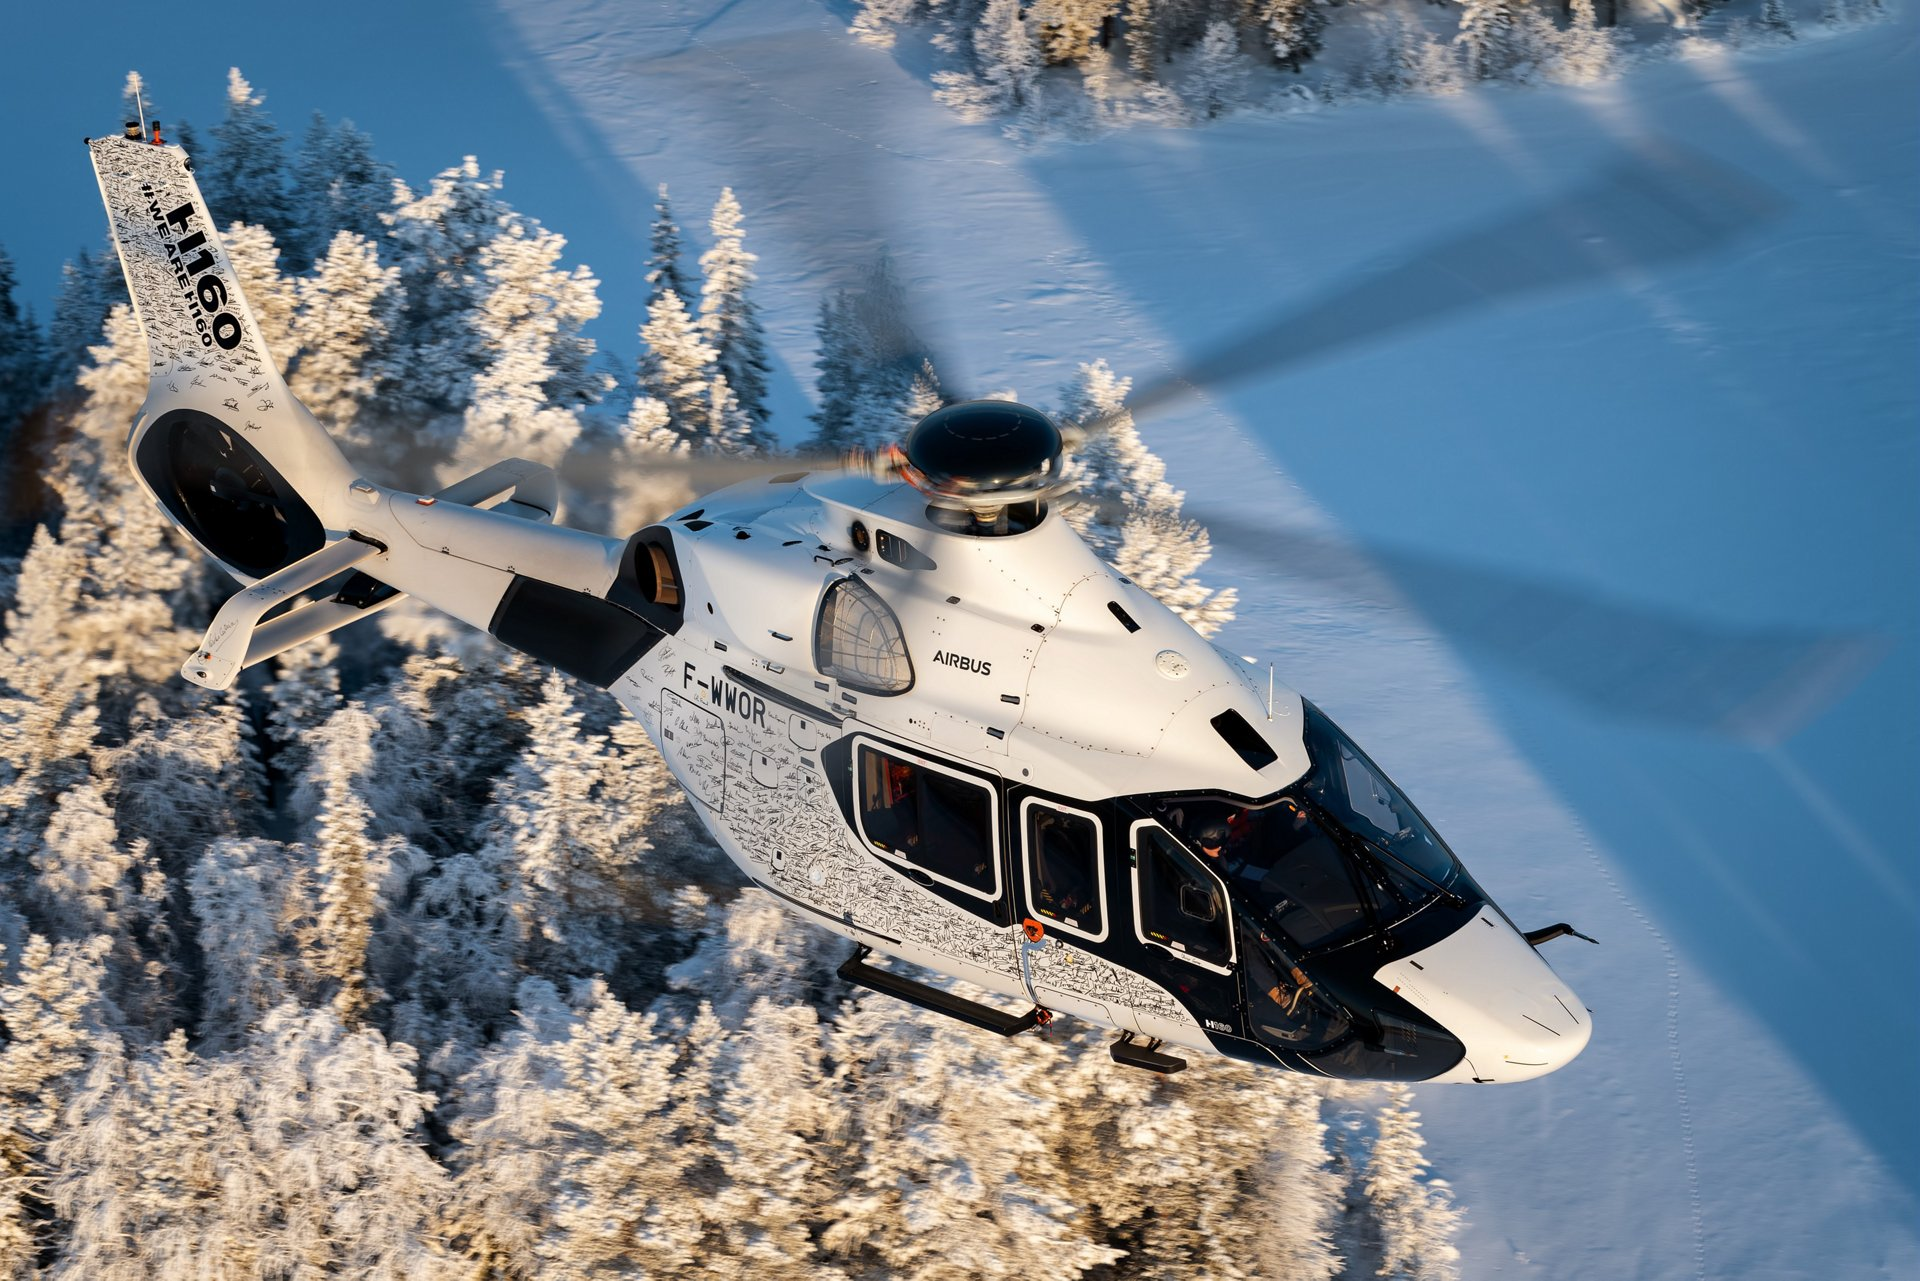 Airbus Corporate Helicopters (ACH) will this week begin demonstrating the world's most advanced medium helicopter – the ACH160 – to prospective customers at the Monaco Yacht Show, the world's foremost super yacht event.